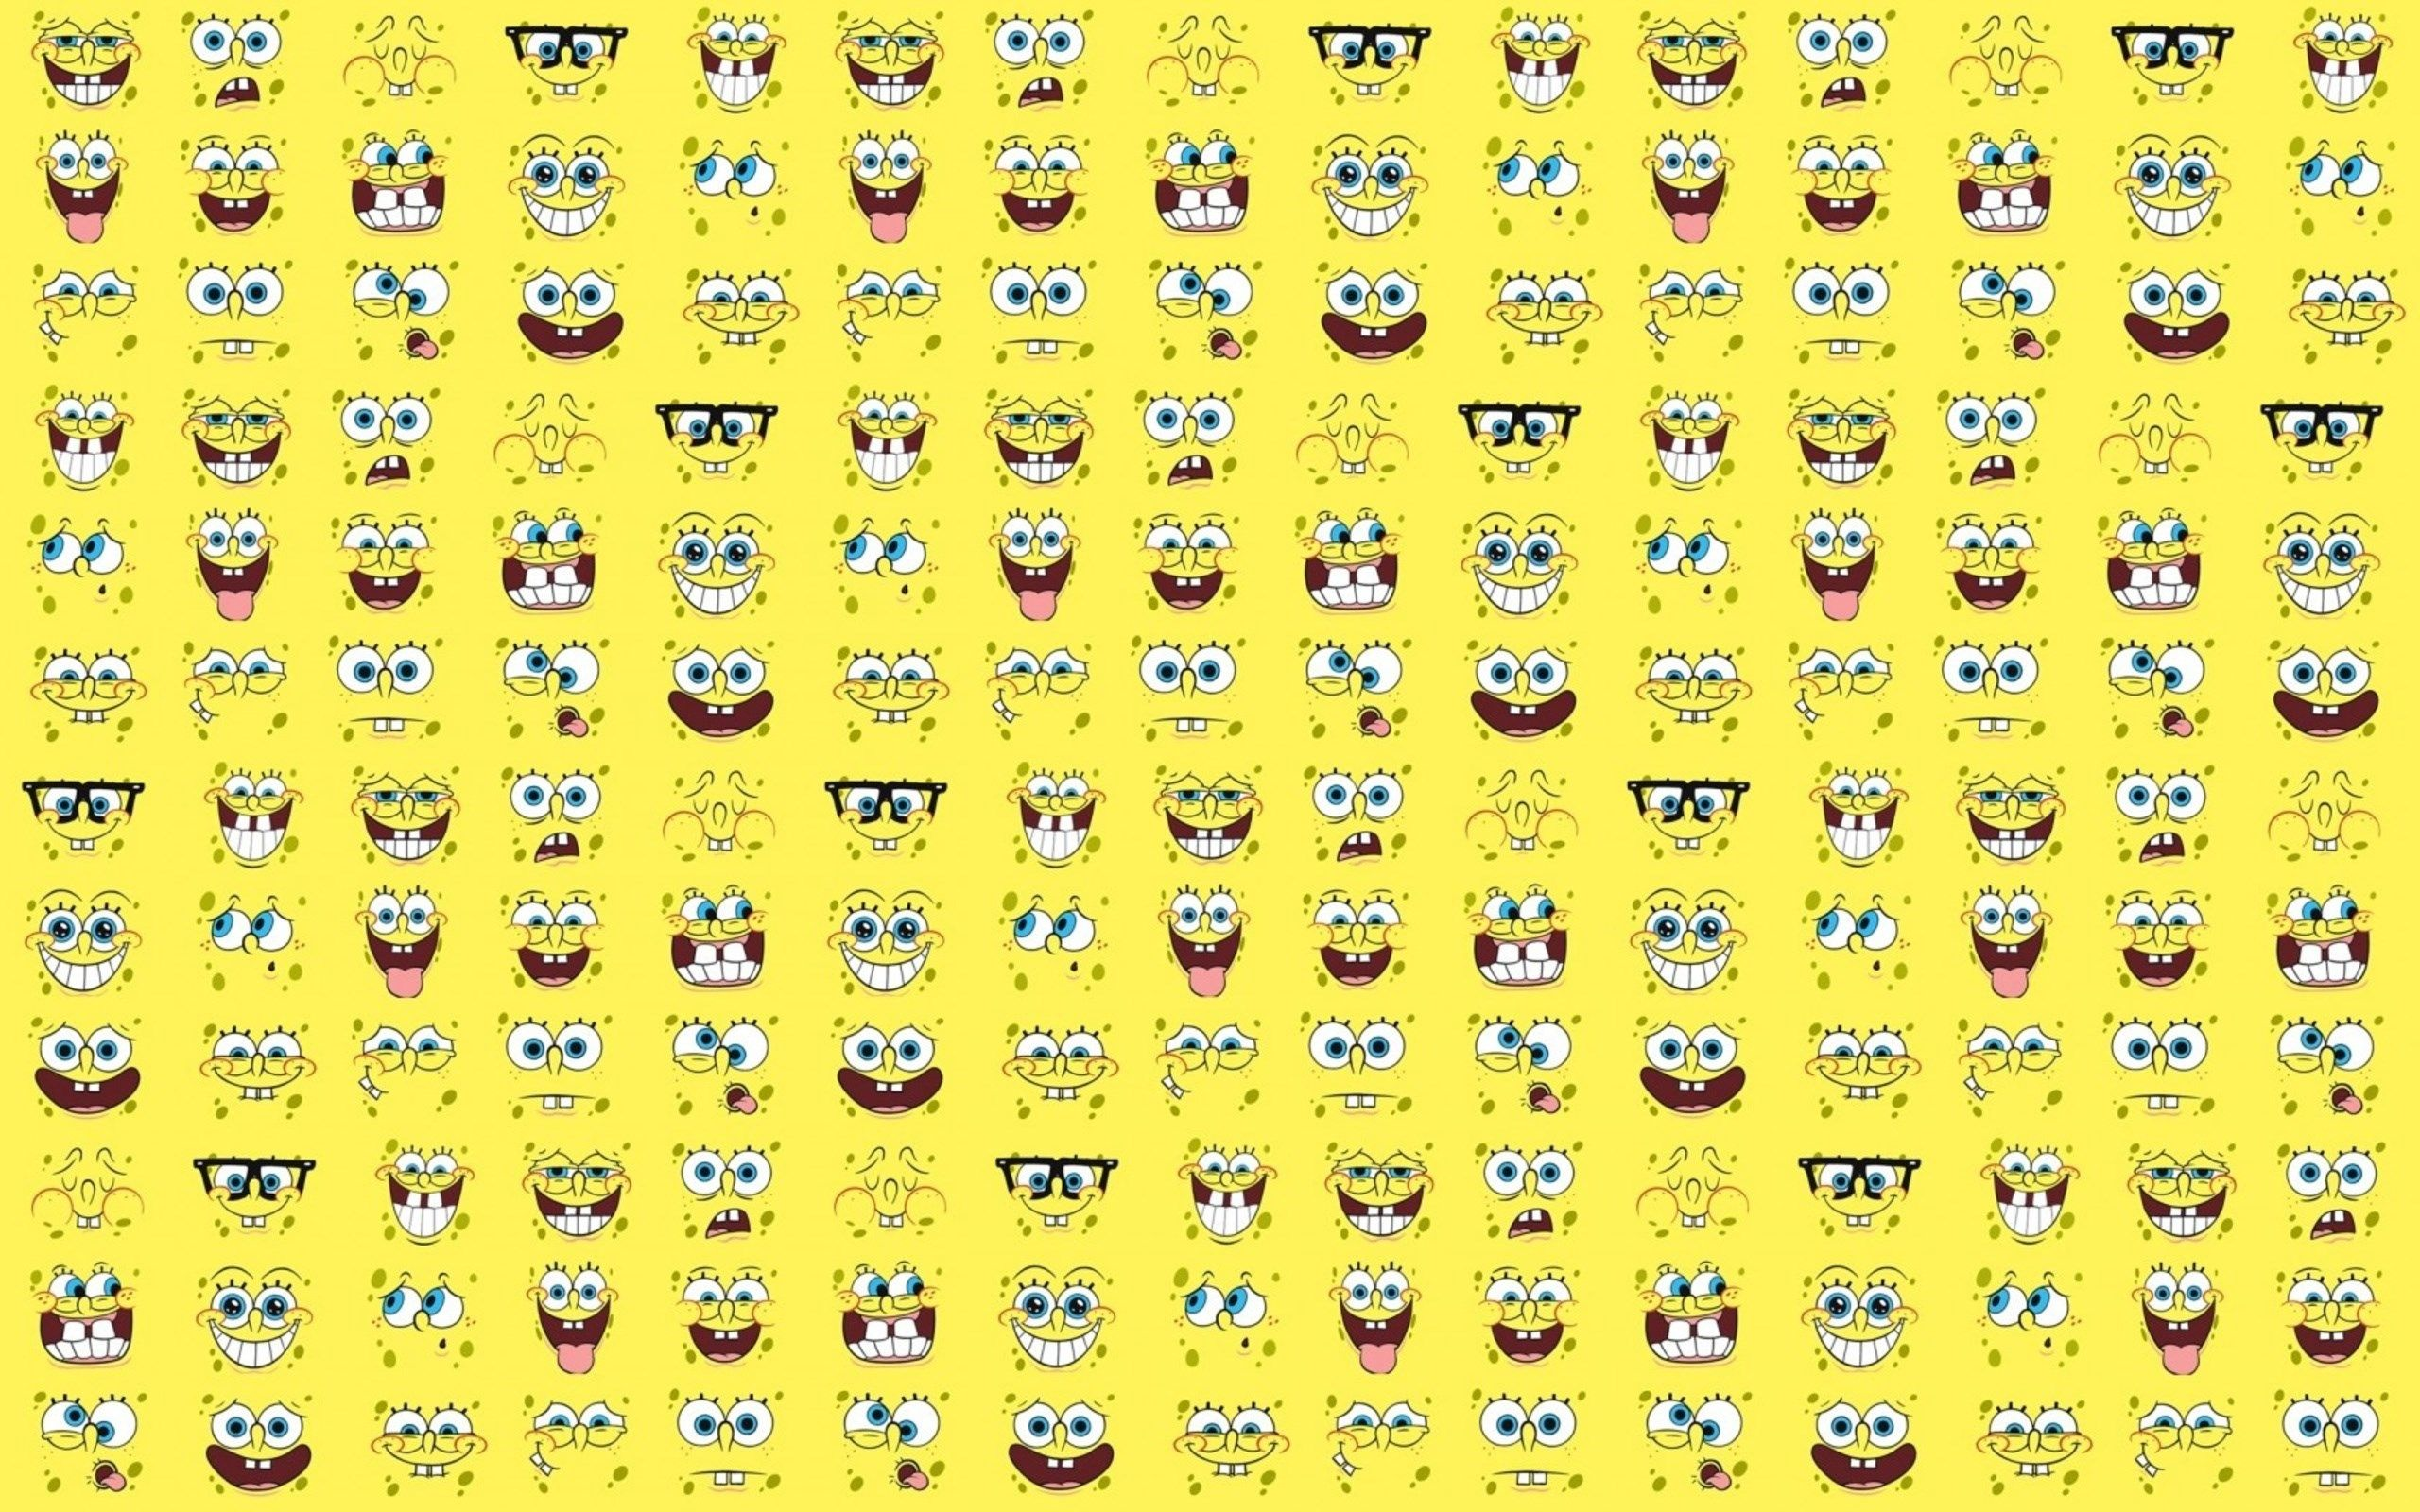 Free Download Spongebob Squarepants Spongebob Wallpaper